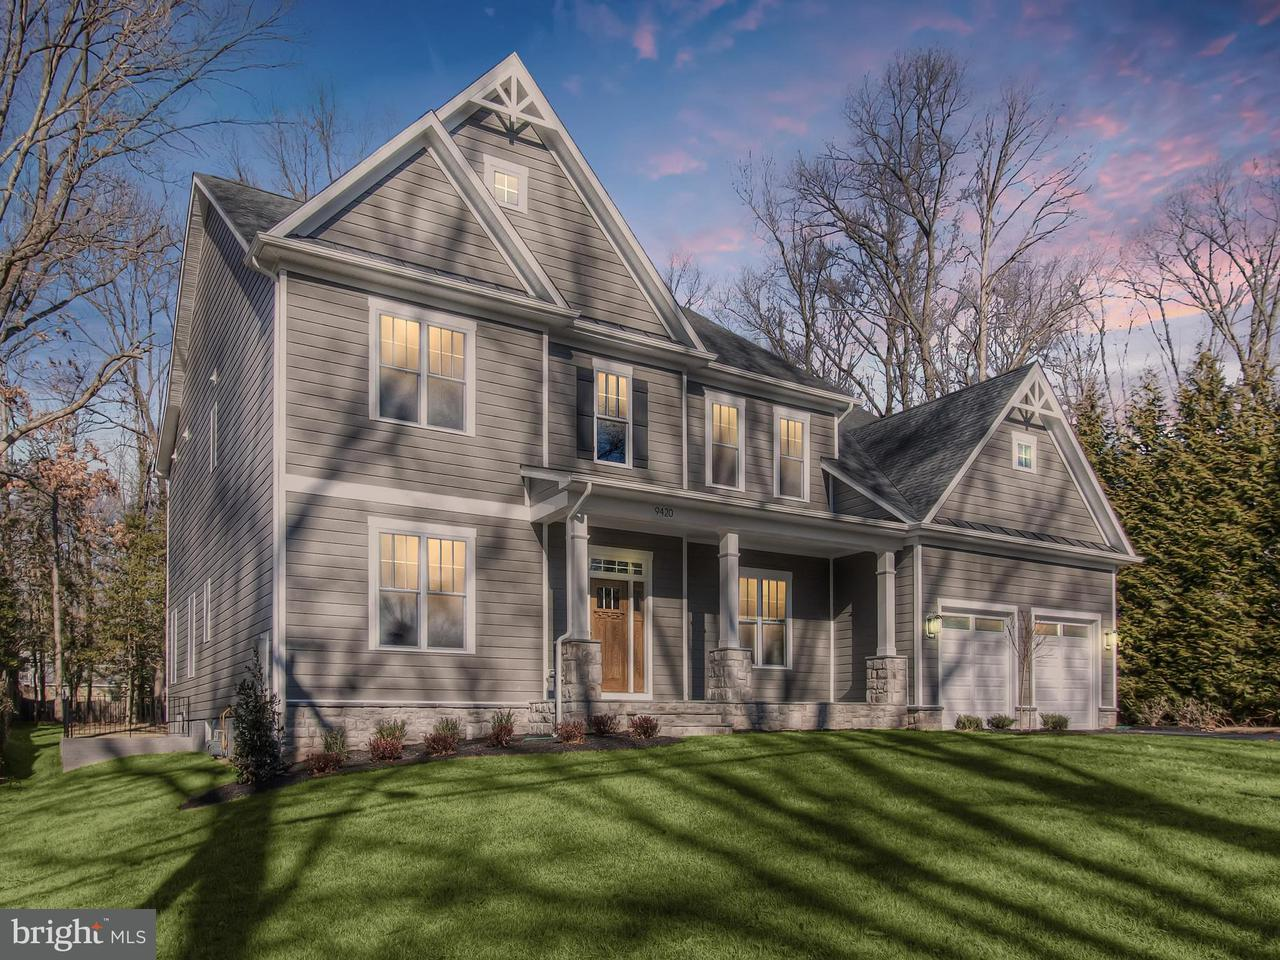 Single Family Home for Sale at 9420 Athens Road 9420 Athens Road Fairfax, Virginia 22032 United States